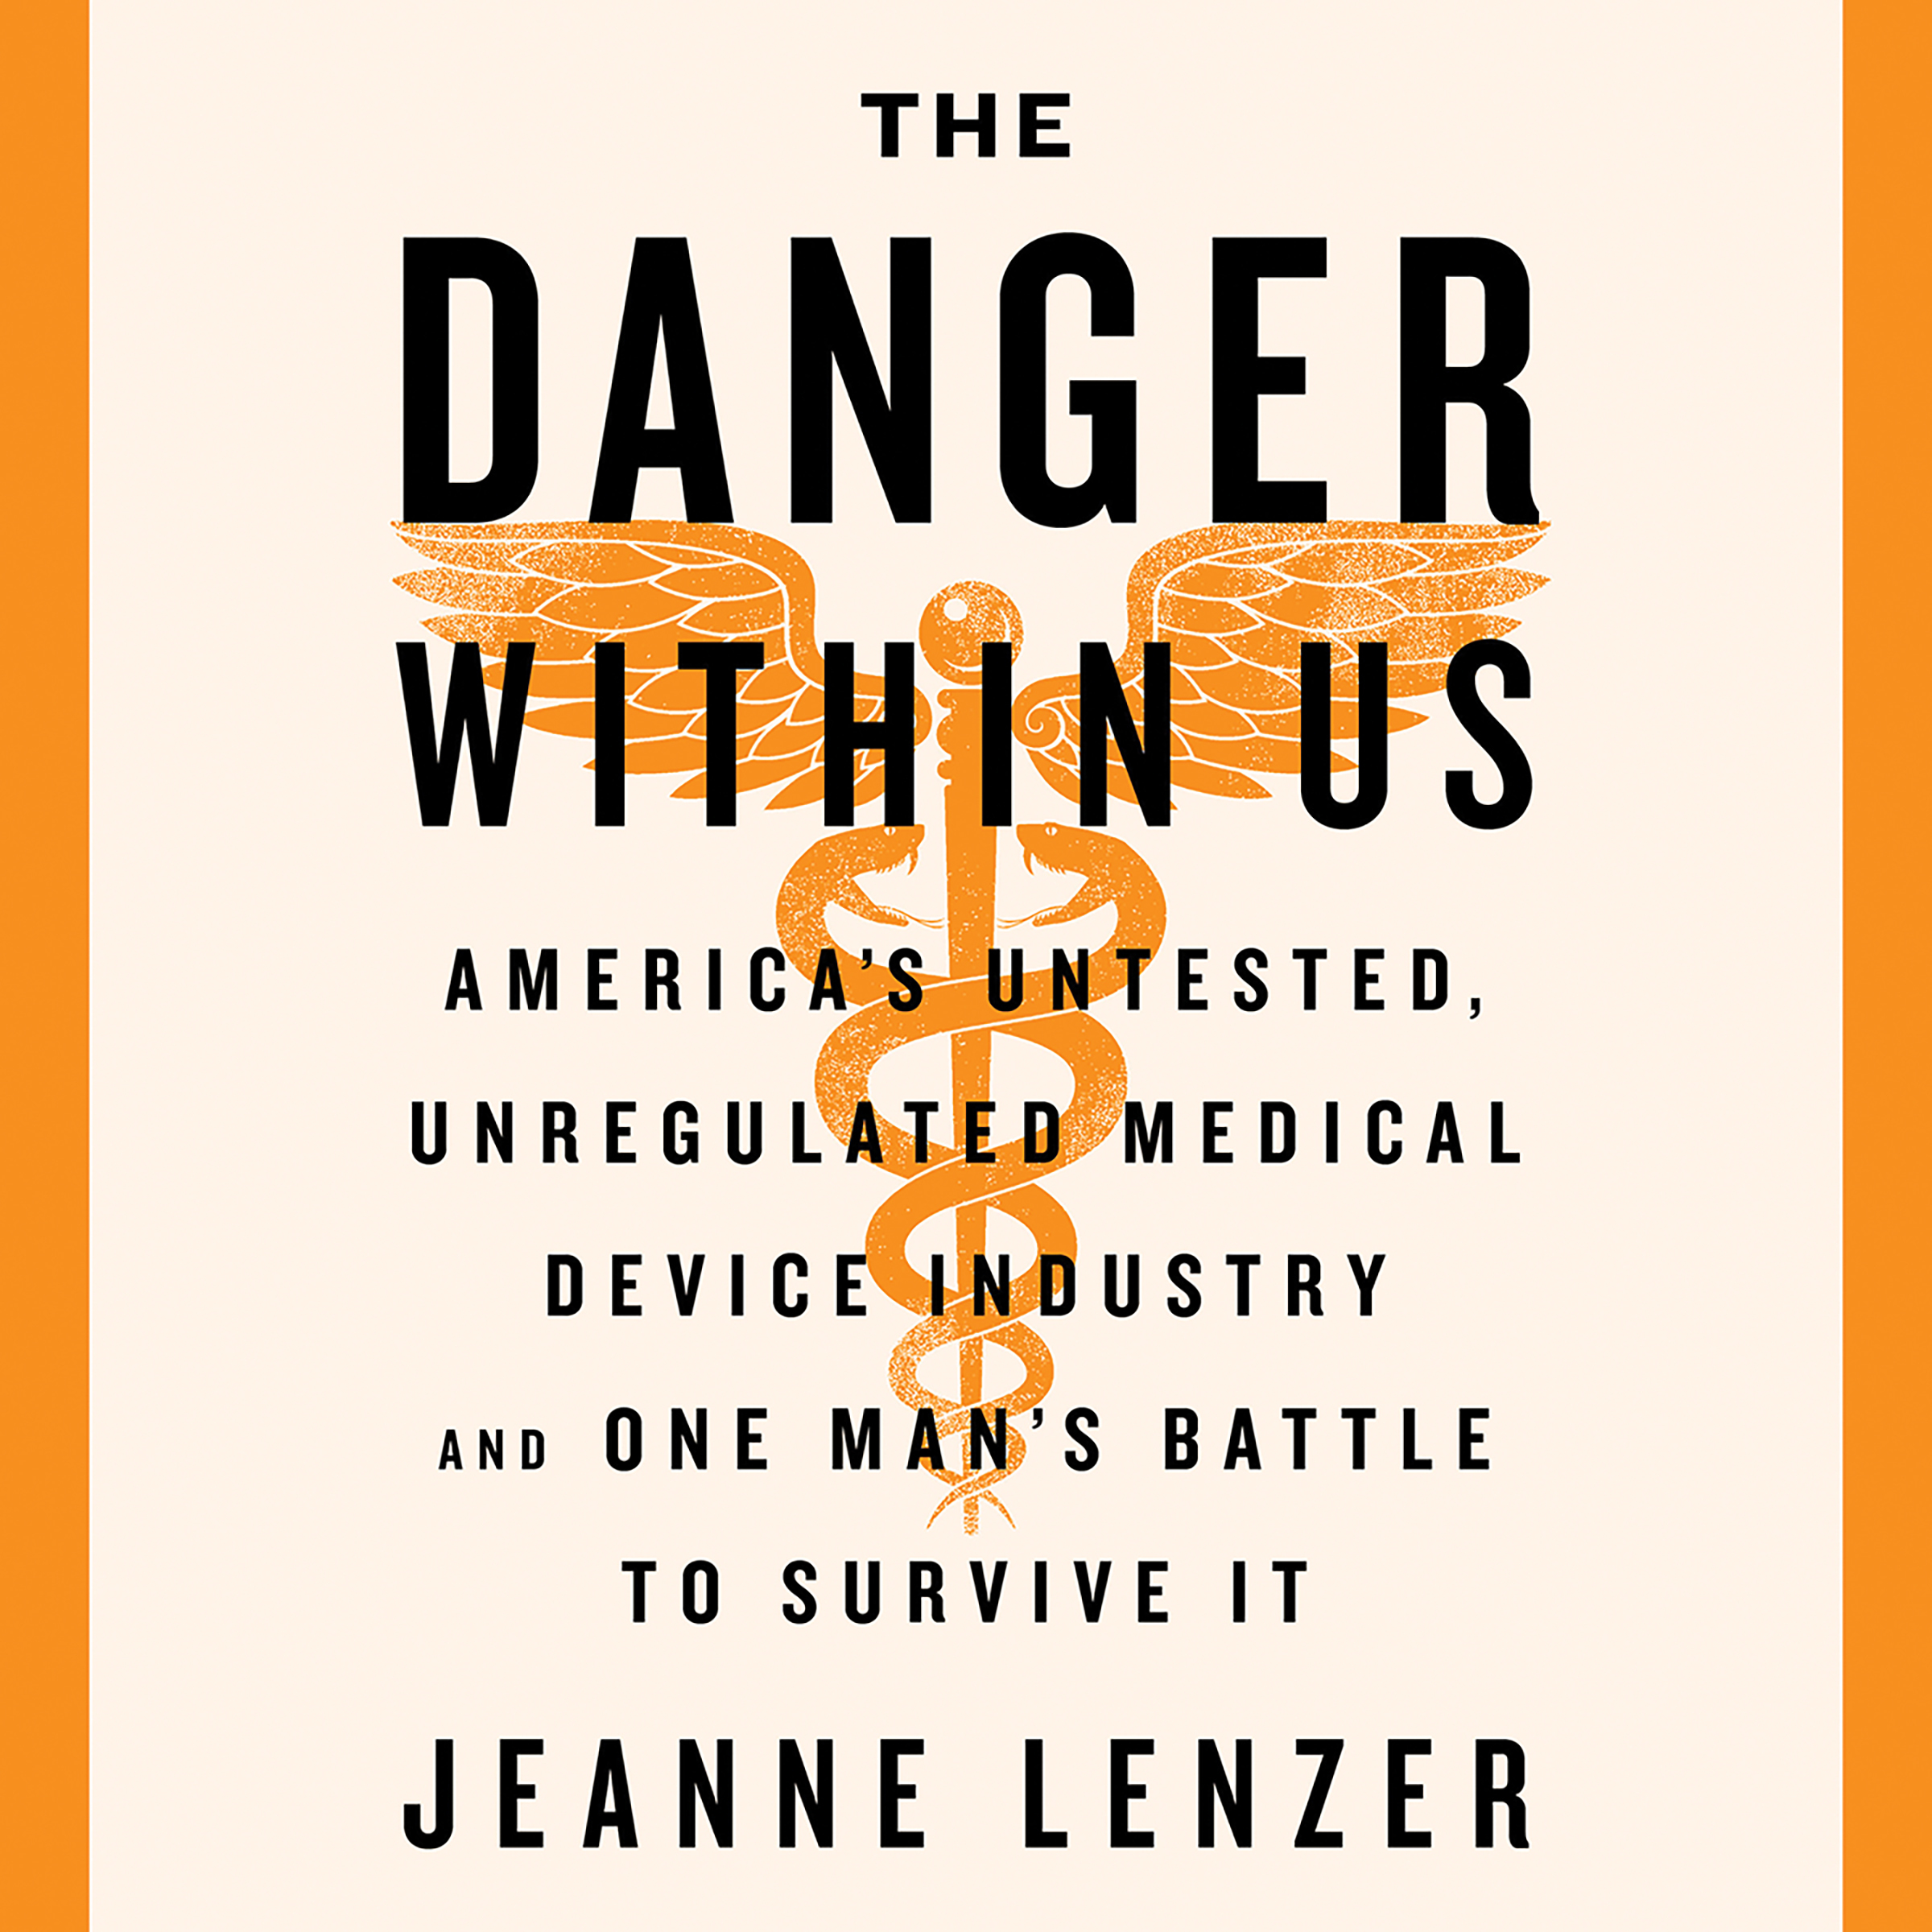 Printable The Danger Within Us: America's Untested, Unregulated Medical Device Industry and One Man's Battle to Survive It Audiobook Cover Art